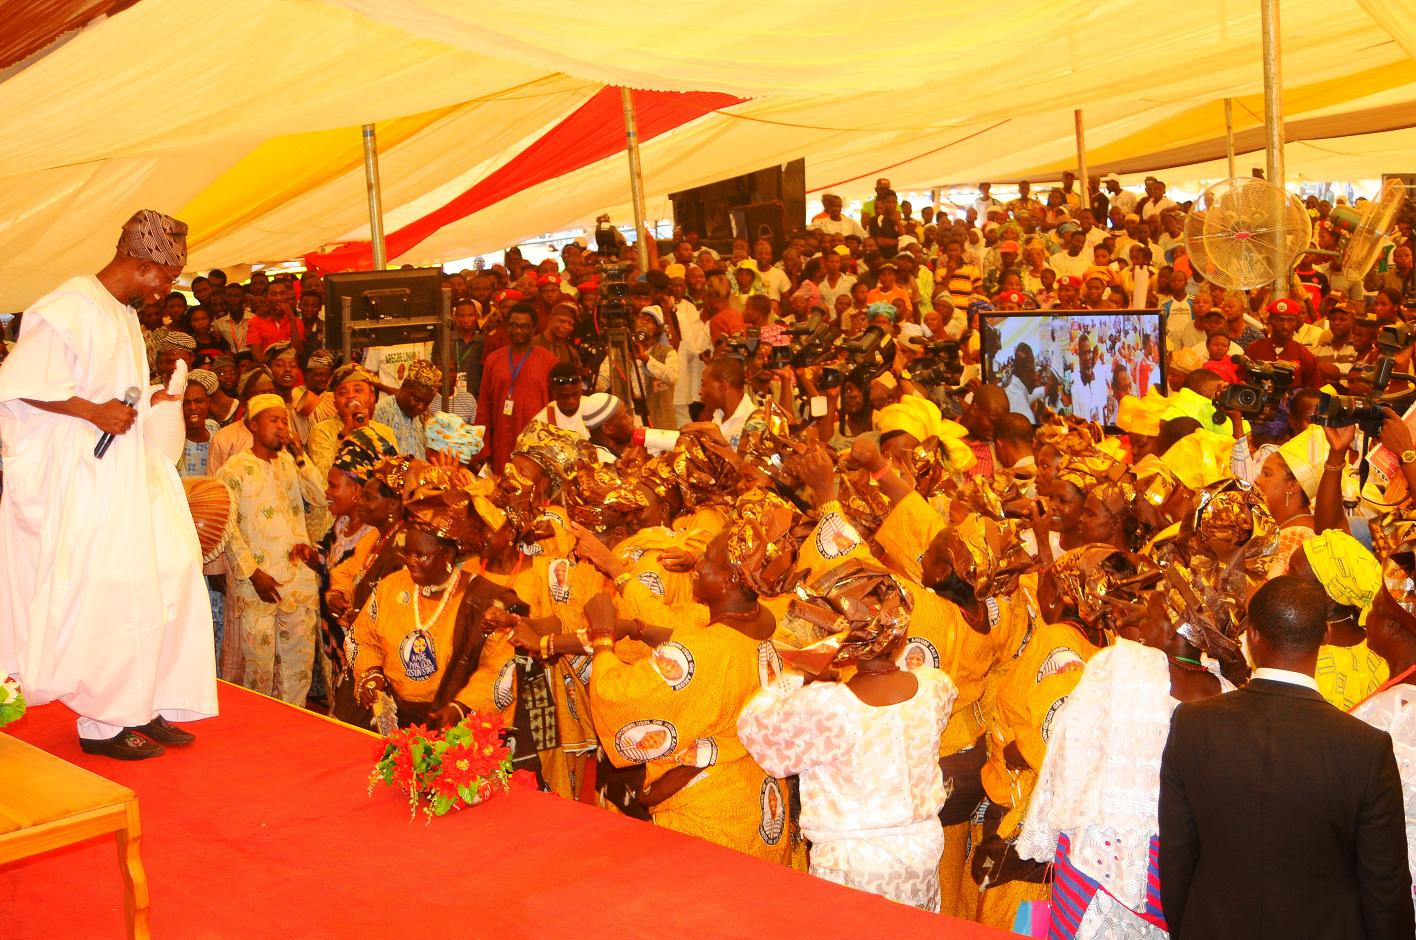 """Governor State of Osun, Ogbeni Rauf Aregbesola (left) dancing with the State  market women and People of Ijeshaland after their word of support for his Second Term in office, during the 6th edition of an interactive programme tagged, """"Gban-gba Dekun"""" in Ijesha South Federal Constituency consisting of Ilesa West, Ilesa East, Atakumosa East and Atakumosa West Local Governments at Ilesa High School, Ilesa, State of Osun last week"""